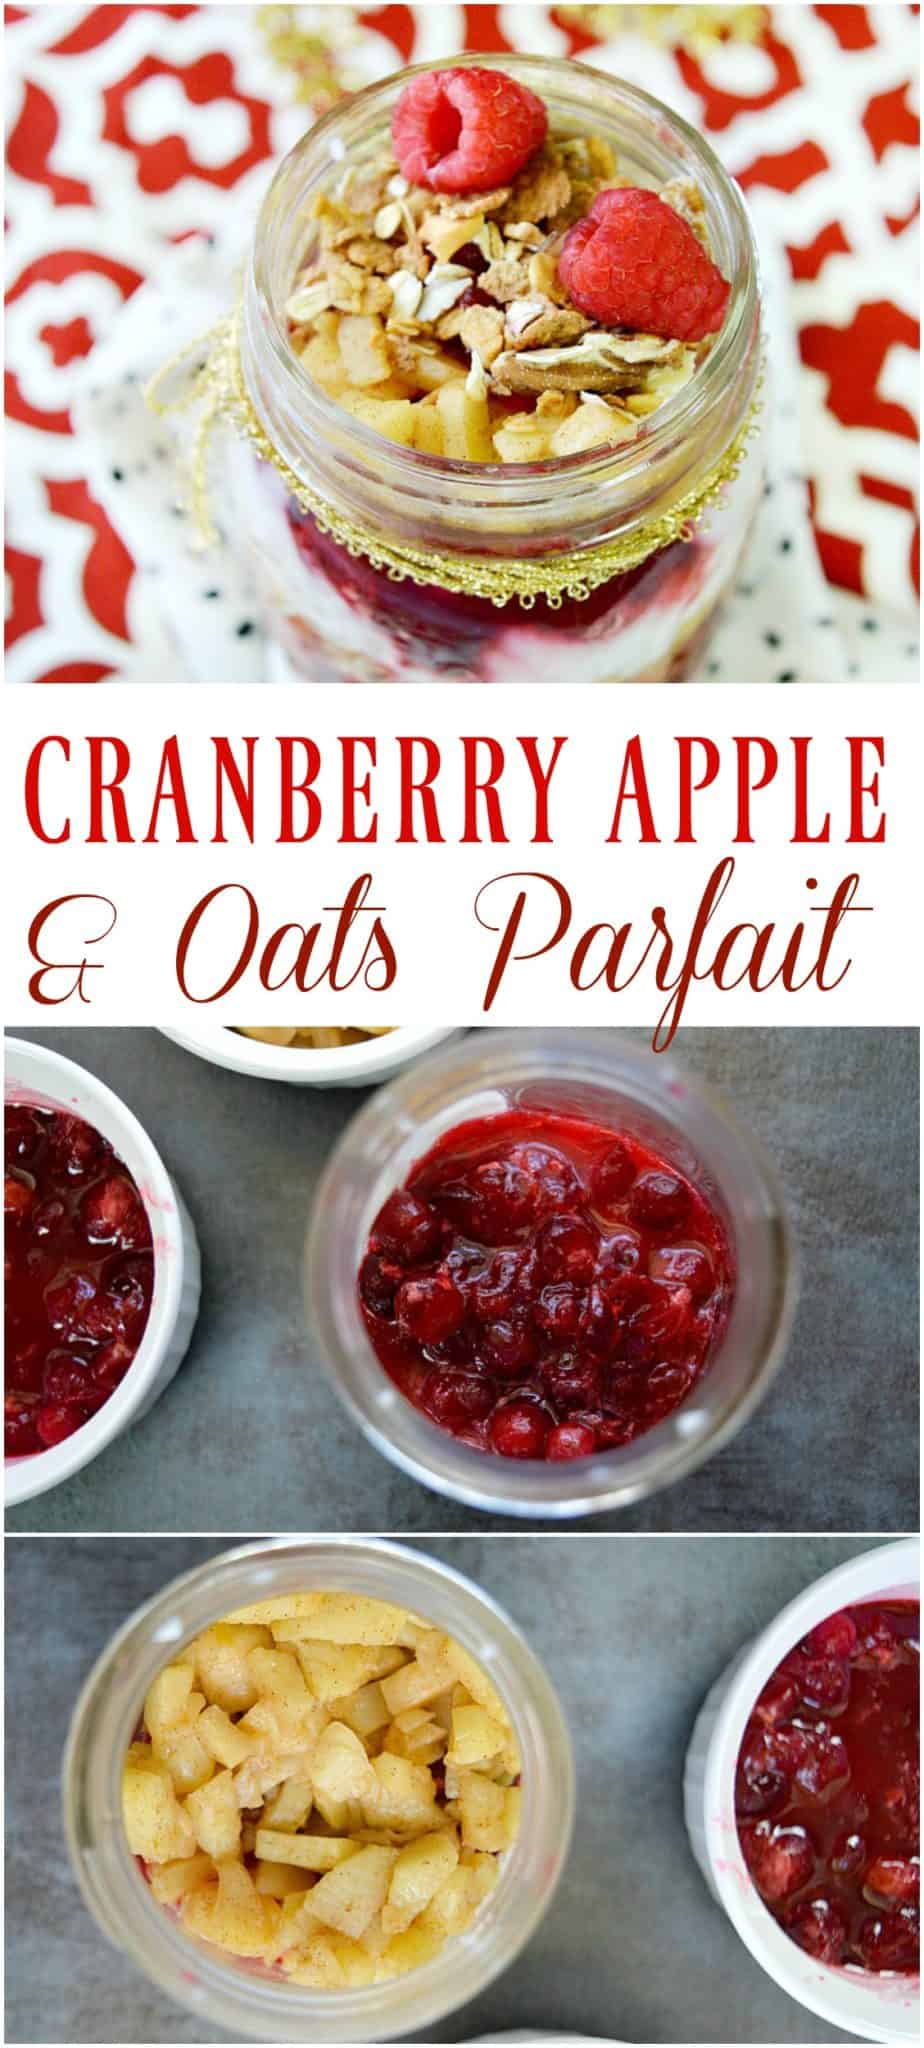 cranberry apple oats parfait